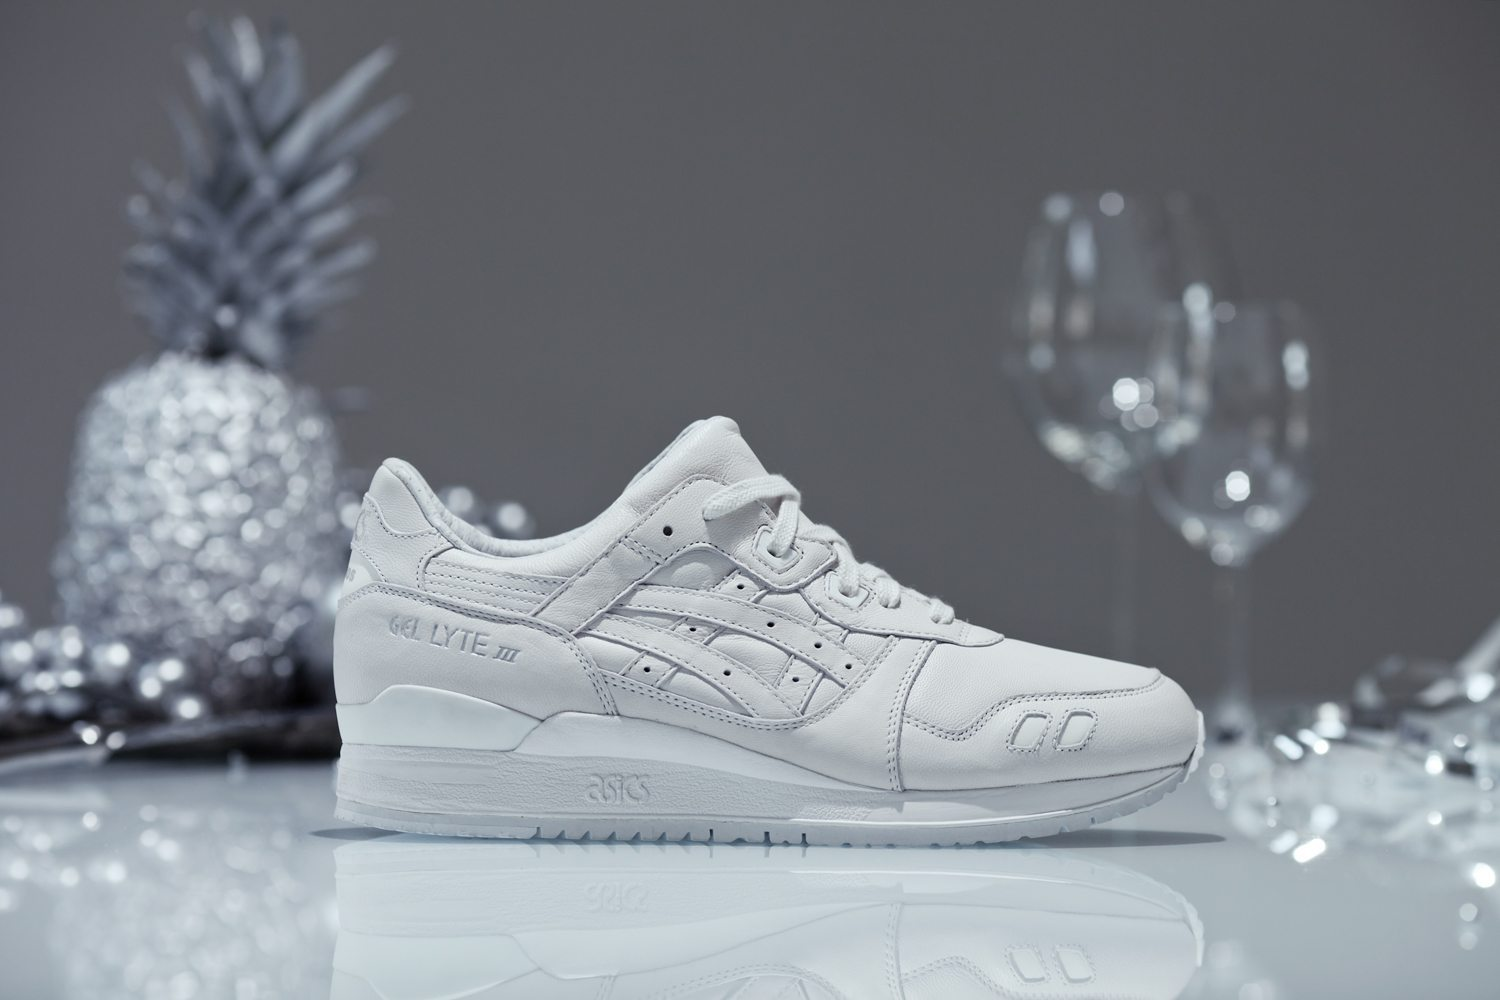 Atmos x Asics Gel Lyte III B Day Dinner 12